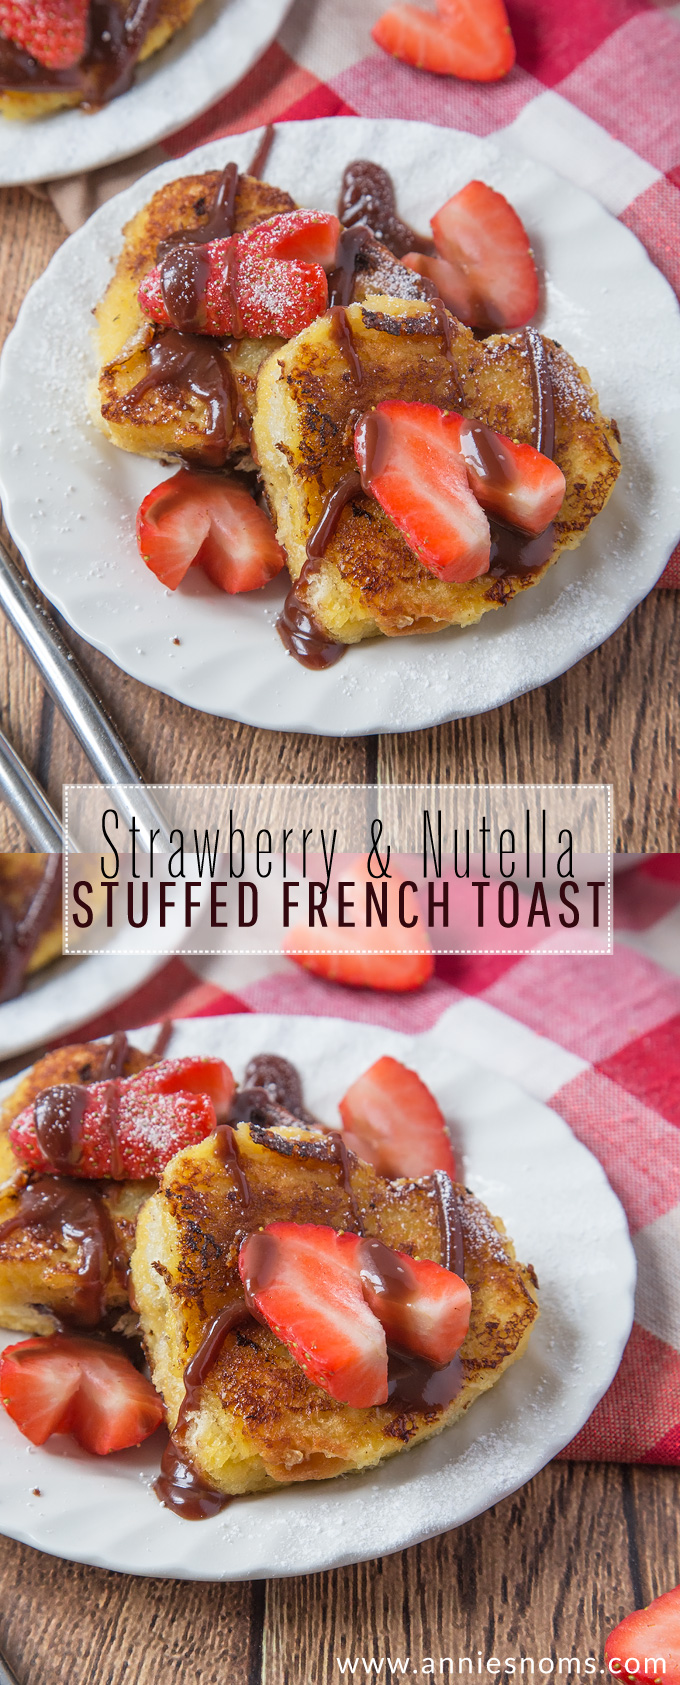 This Mini Strawberry and Nutella Stuffed French Toast is cute, fun to make and the perfect Valentine's Day breakfast for the one you love! #ad